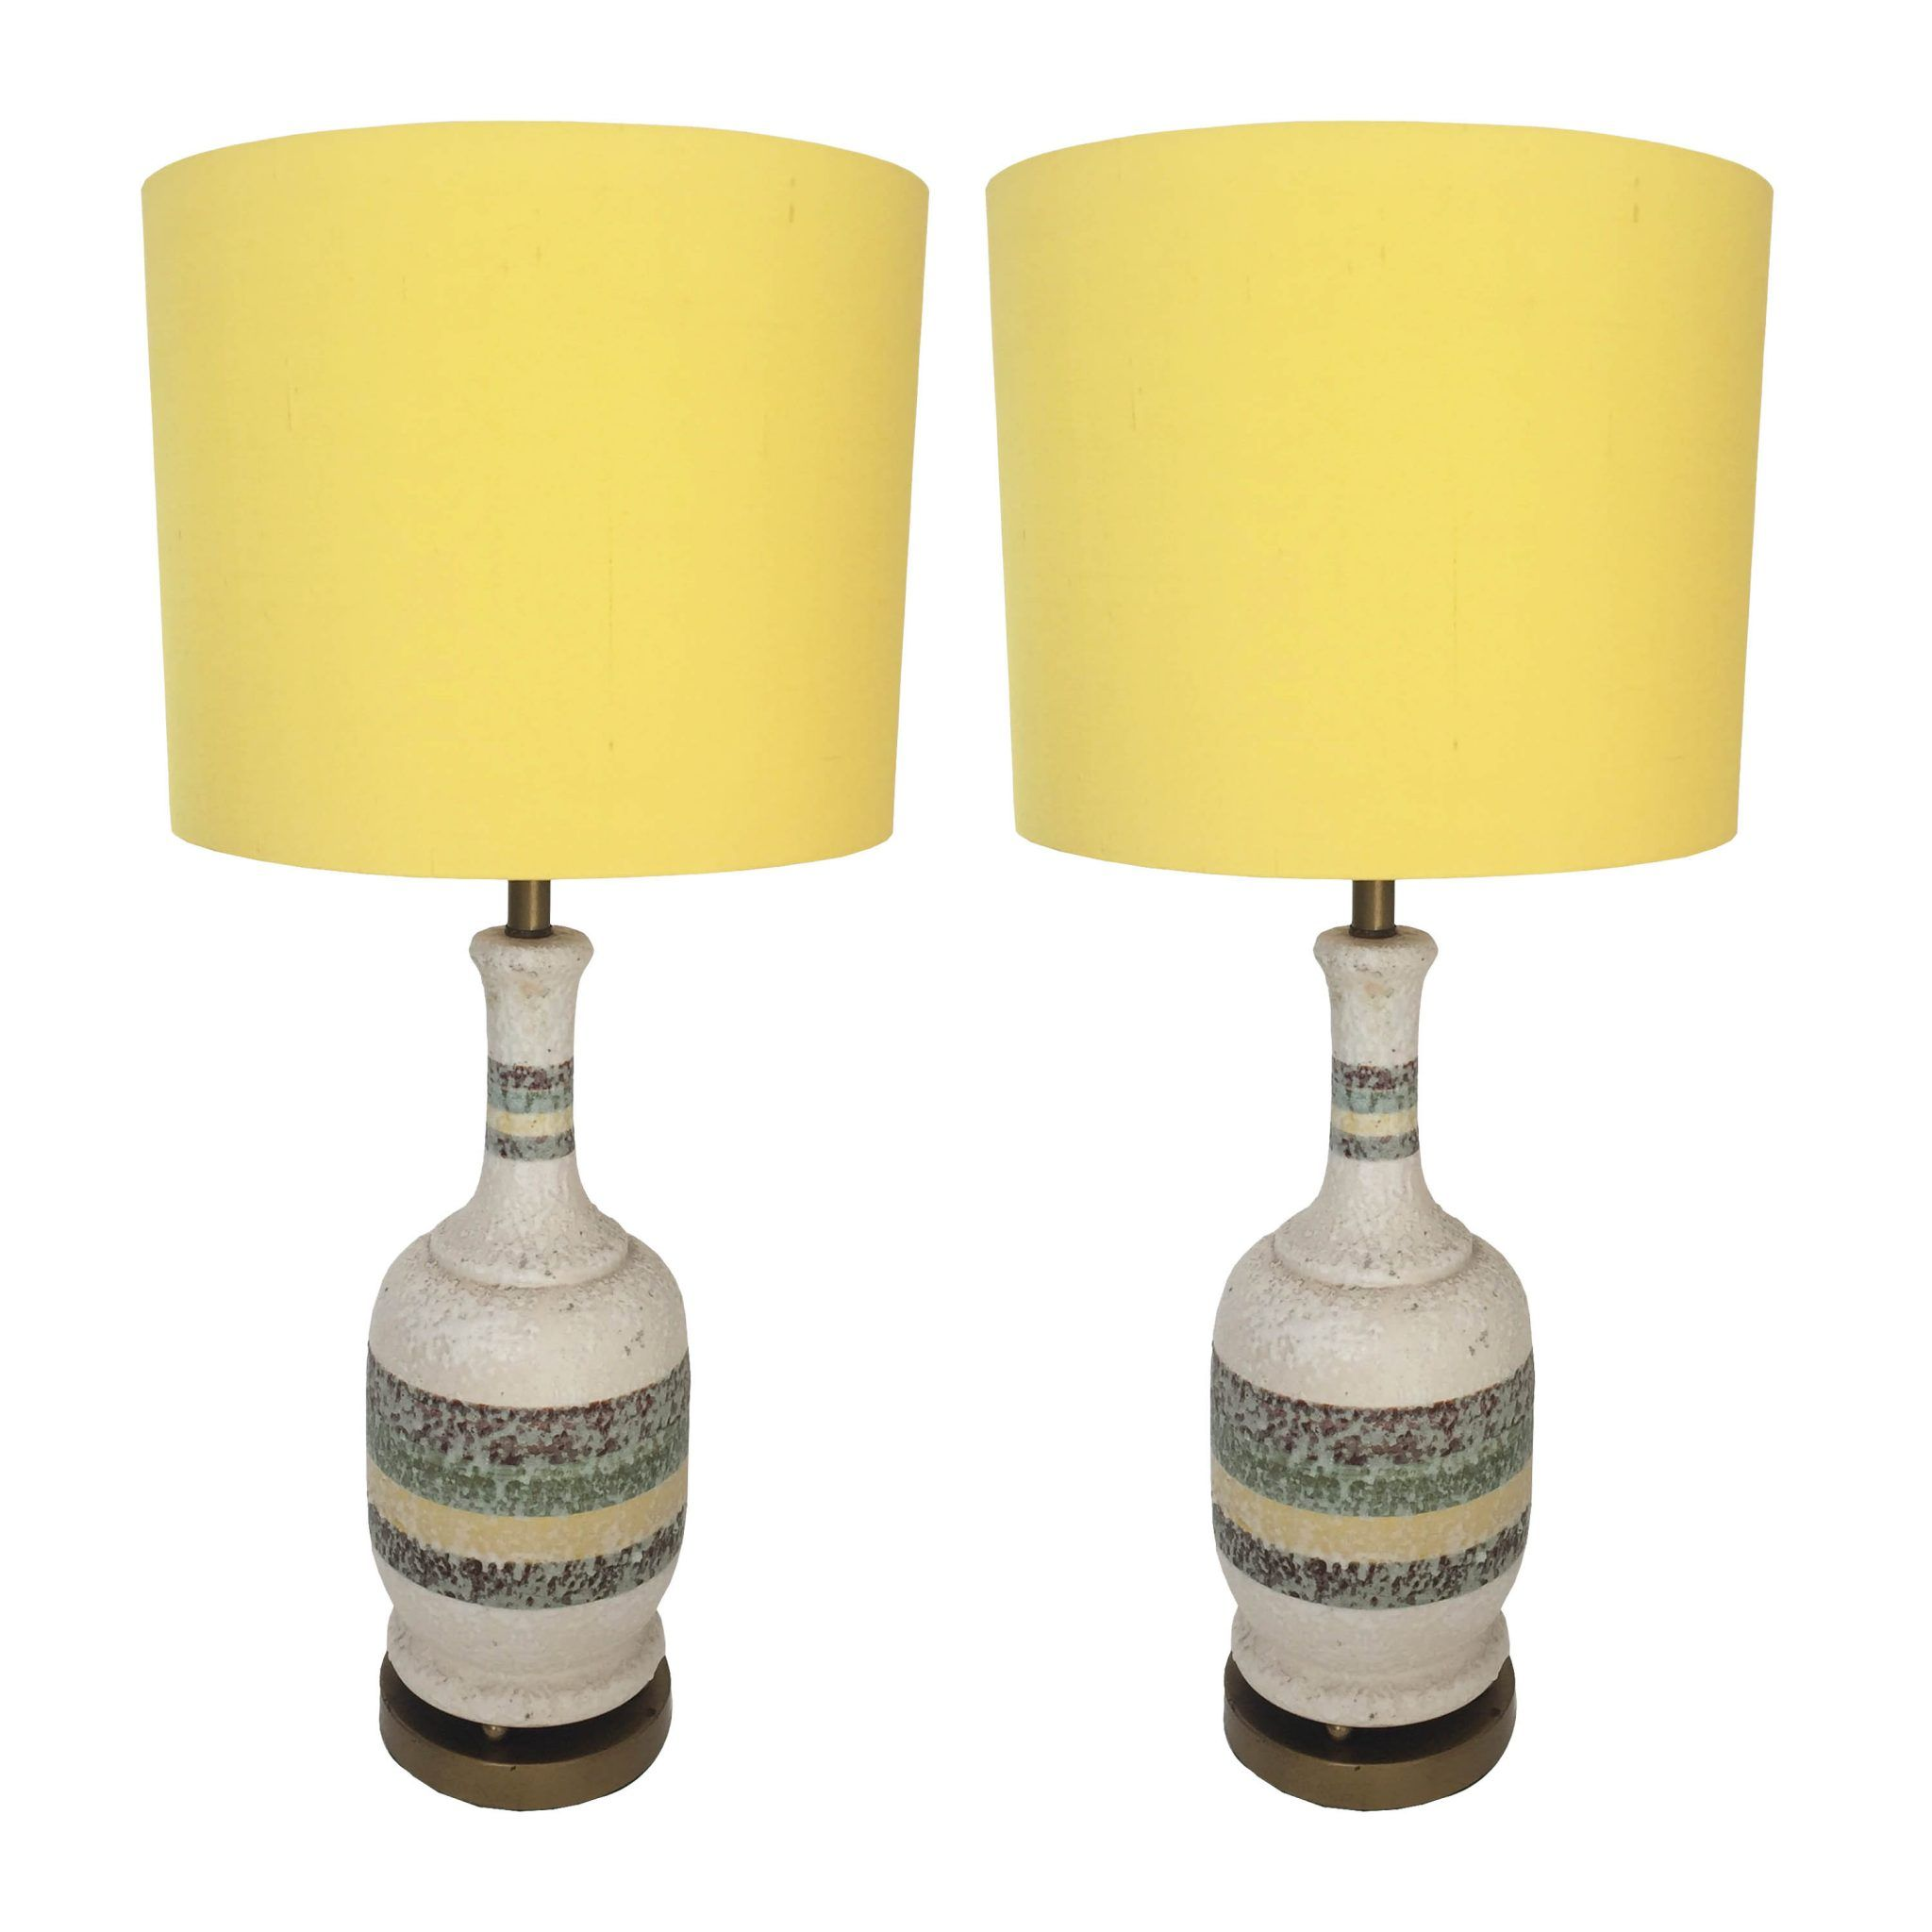 Pair Of Mid Century American Vintage Ceramic And Brass Table Lamps